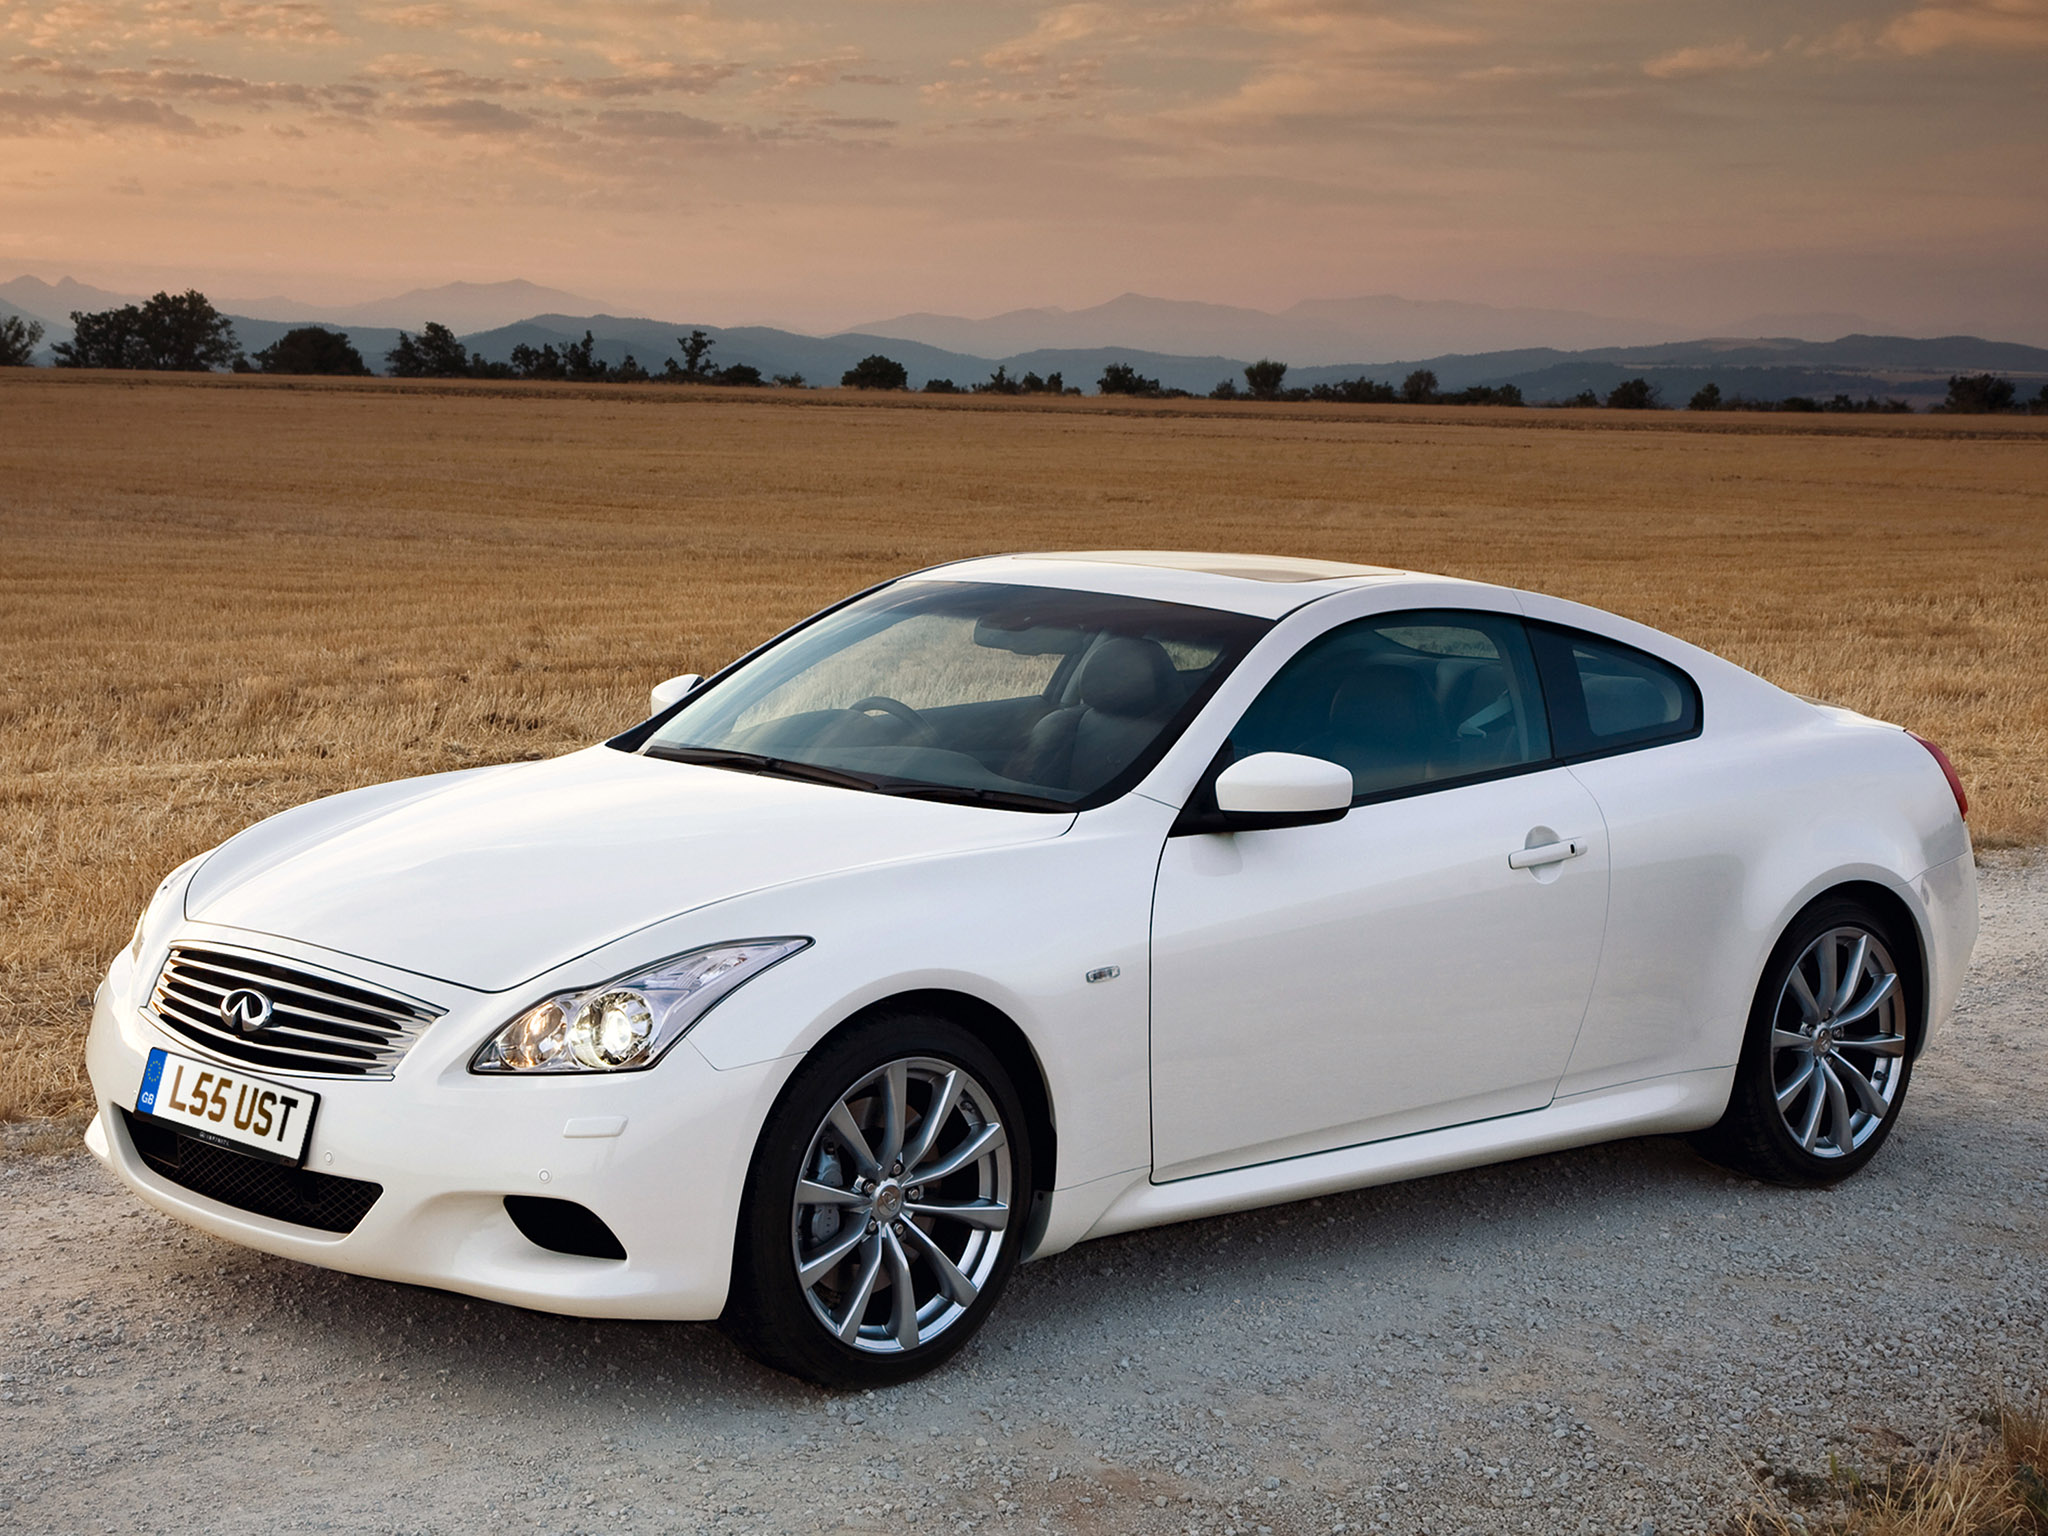 Infiniti G37 S Coupe 2010 Infiniti G37 S Coupe 2010 Photo 30 – Car ...